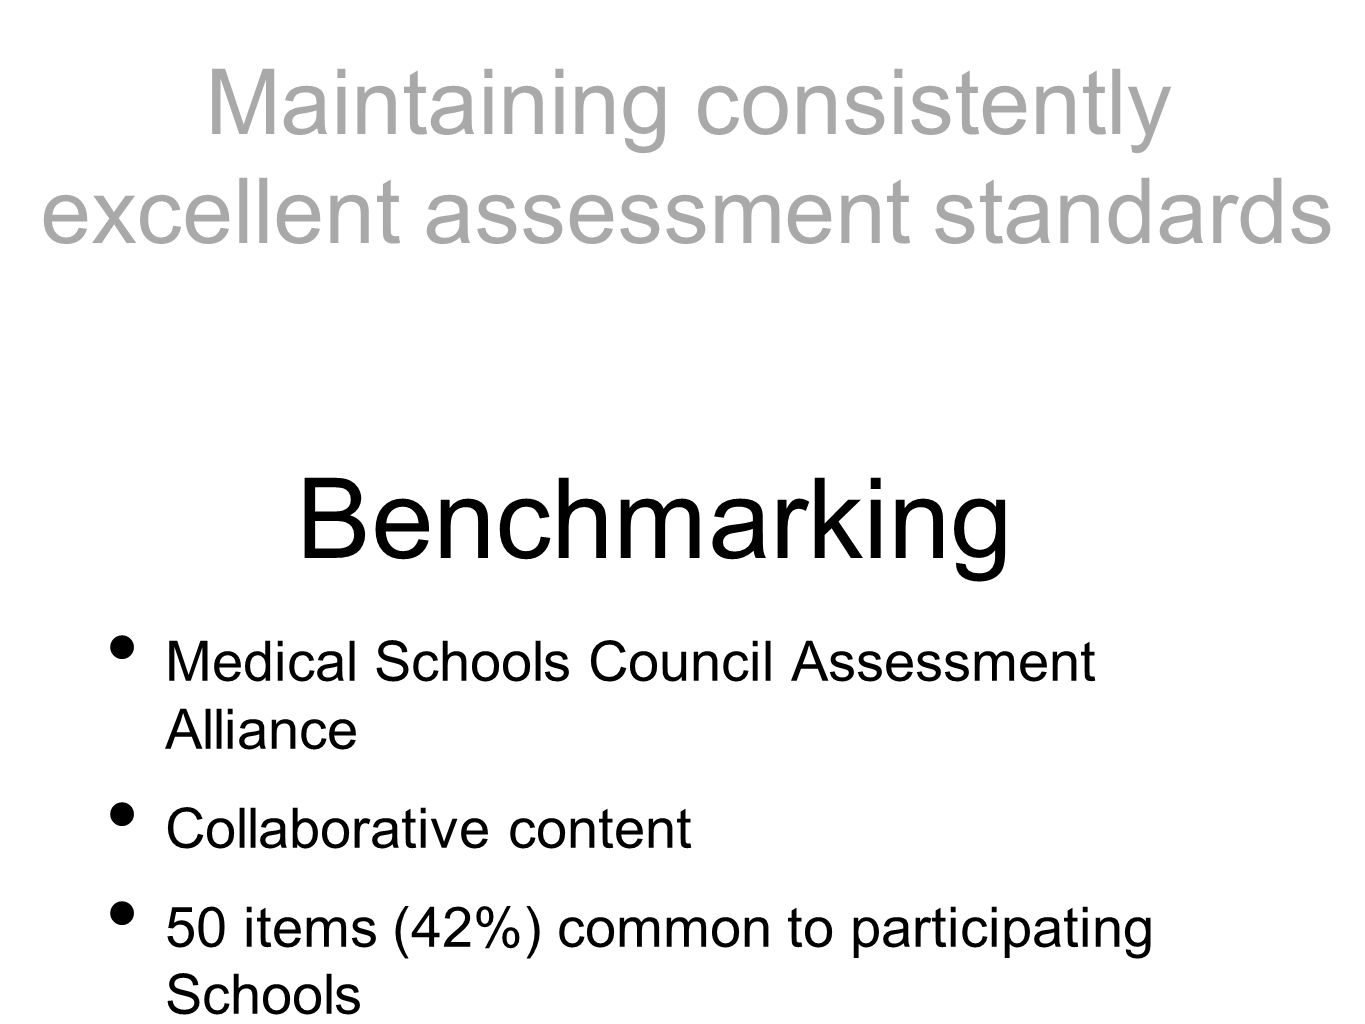 Medical Schools Council Assessment Alliance Collaborative content 50 items (42%) common to participating Schools Benchmarking